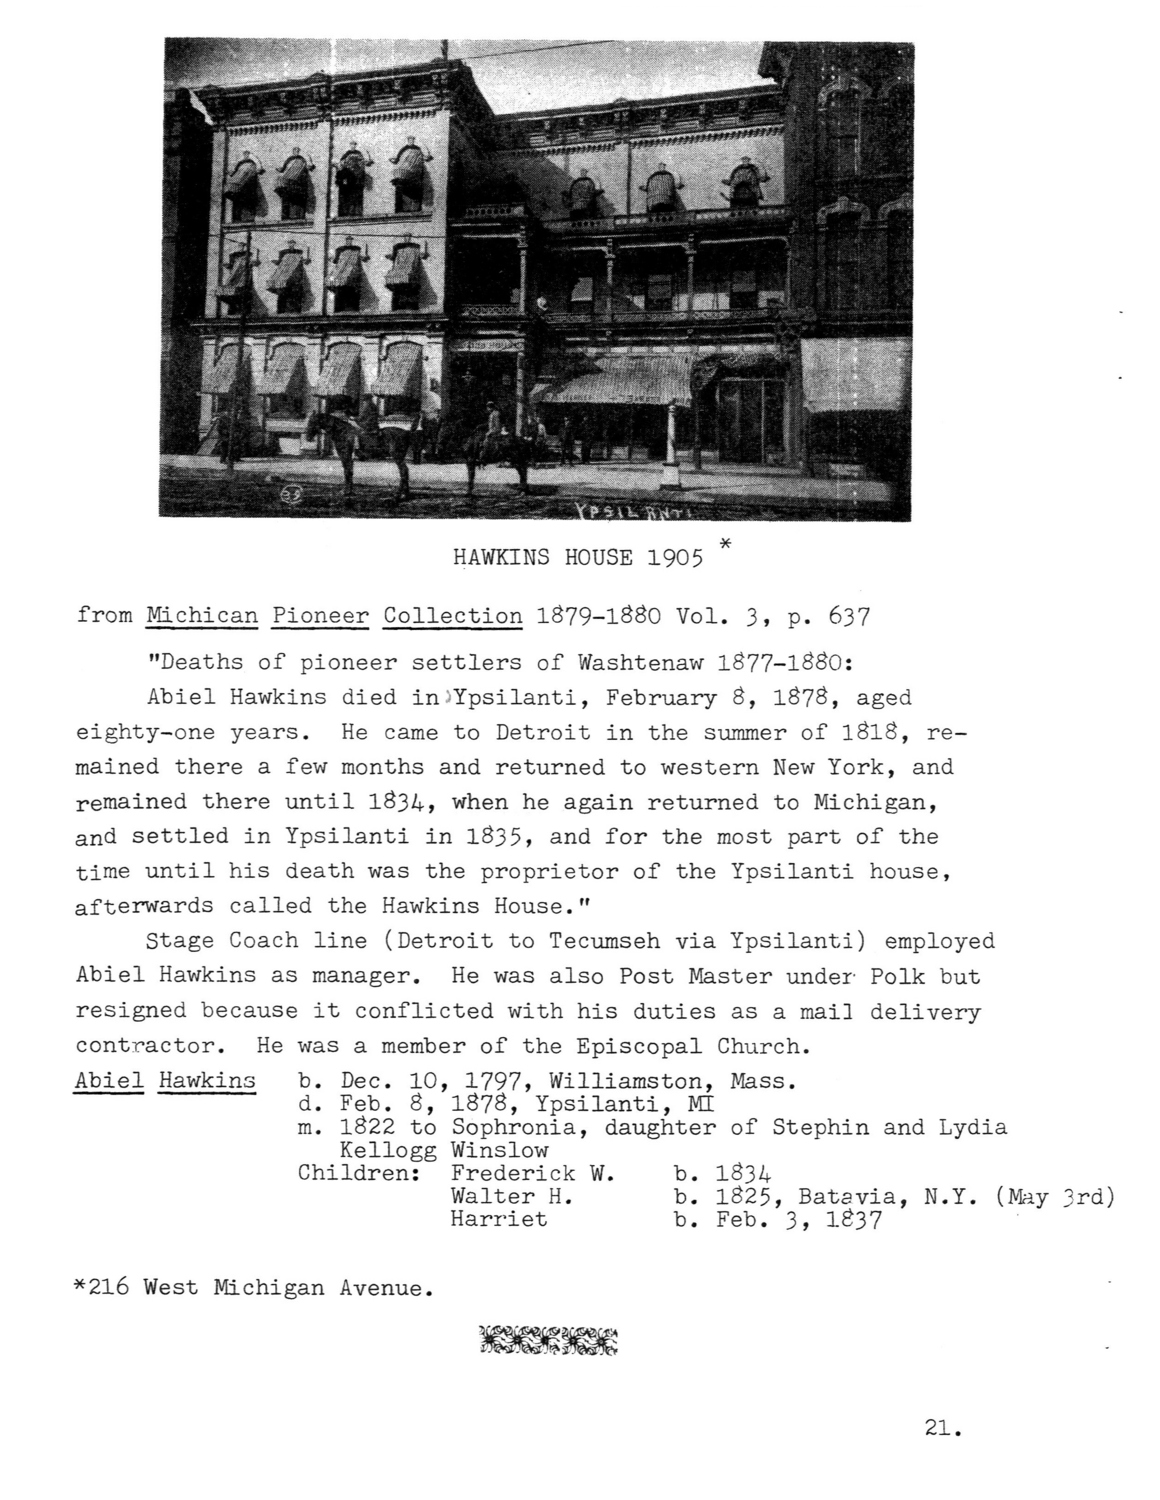 Hawkins House (216 West Michigan Ave), excerpt from Michigan Pioneer Collection image